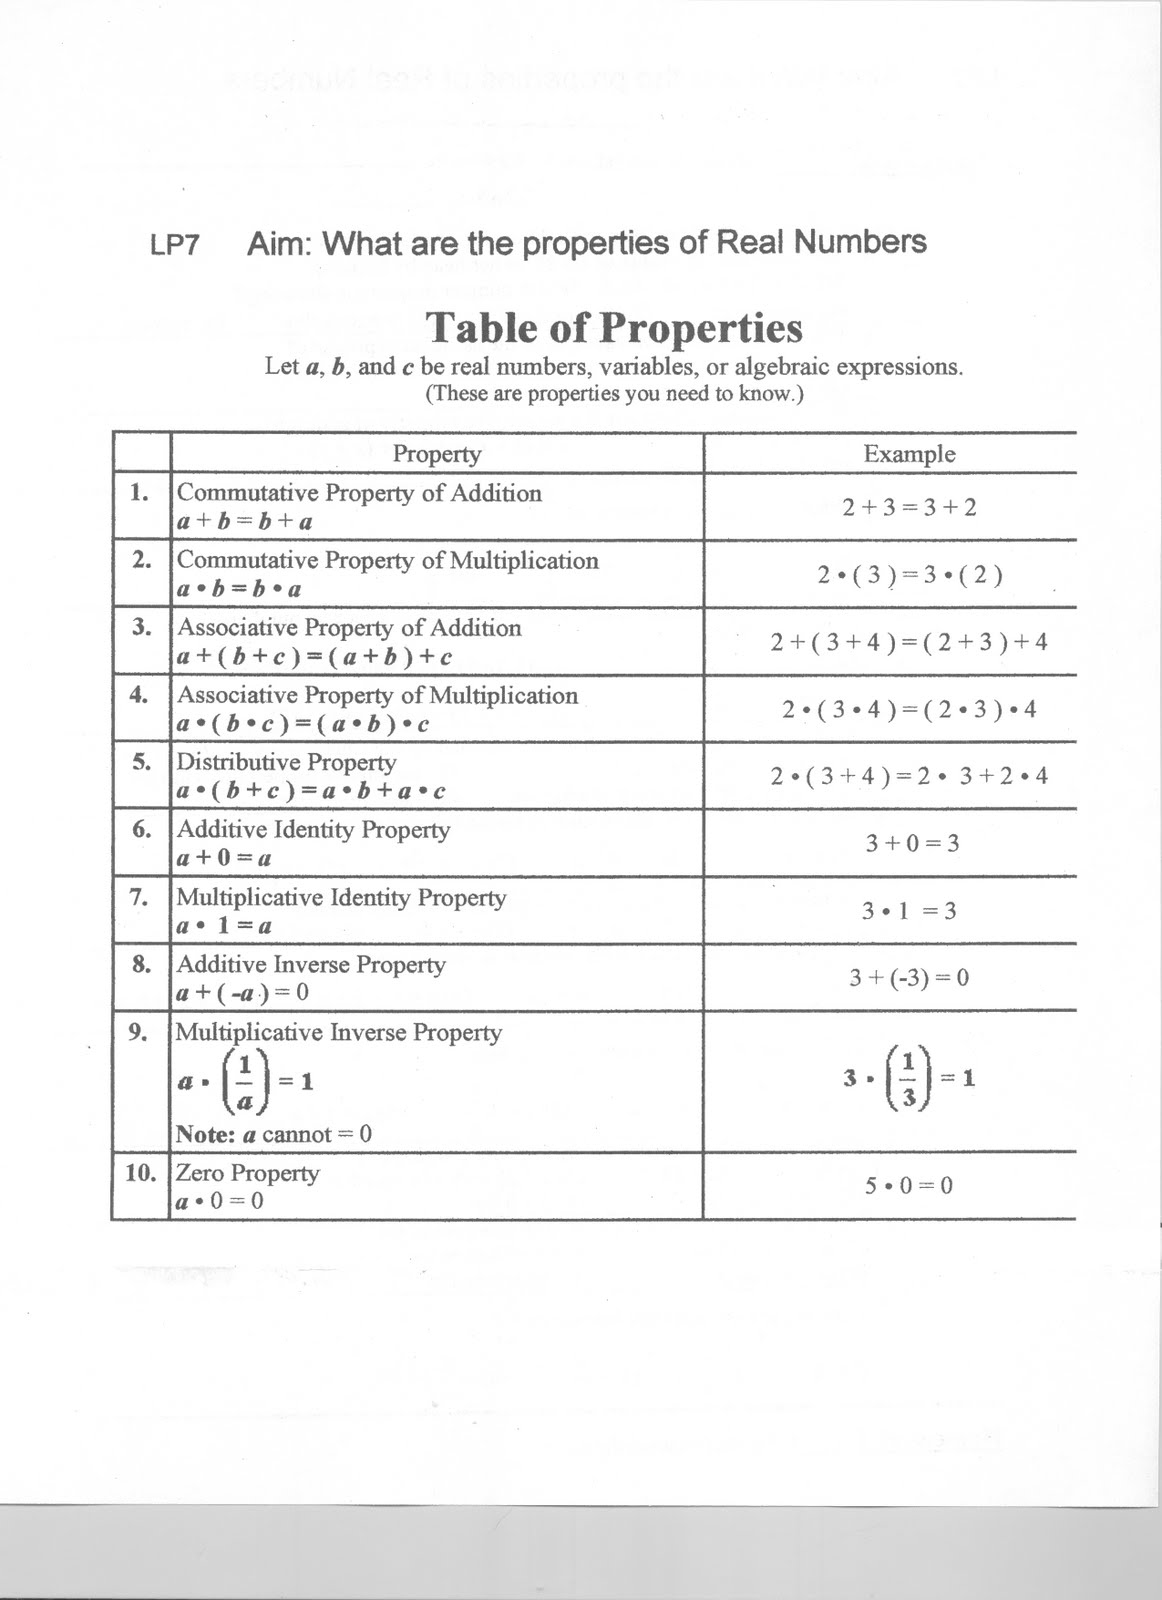 Properties of Real Numbers Worksheet by Math is Easy as Pi | TpT